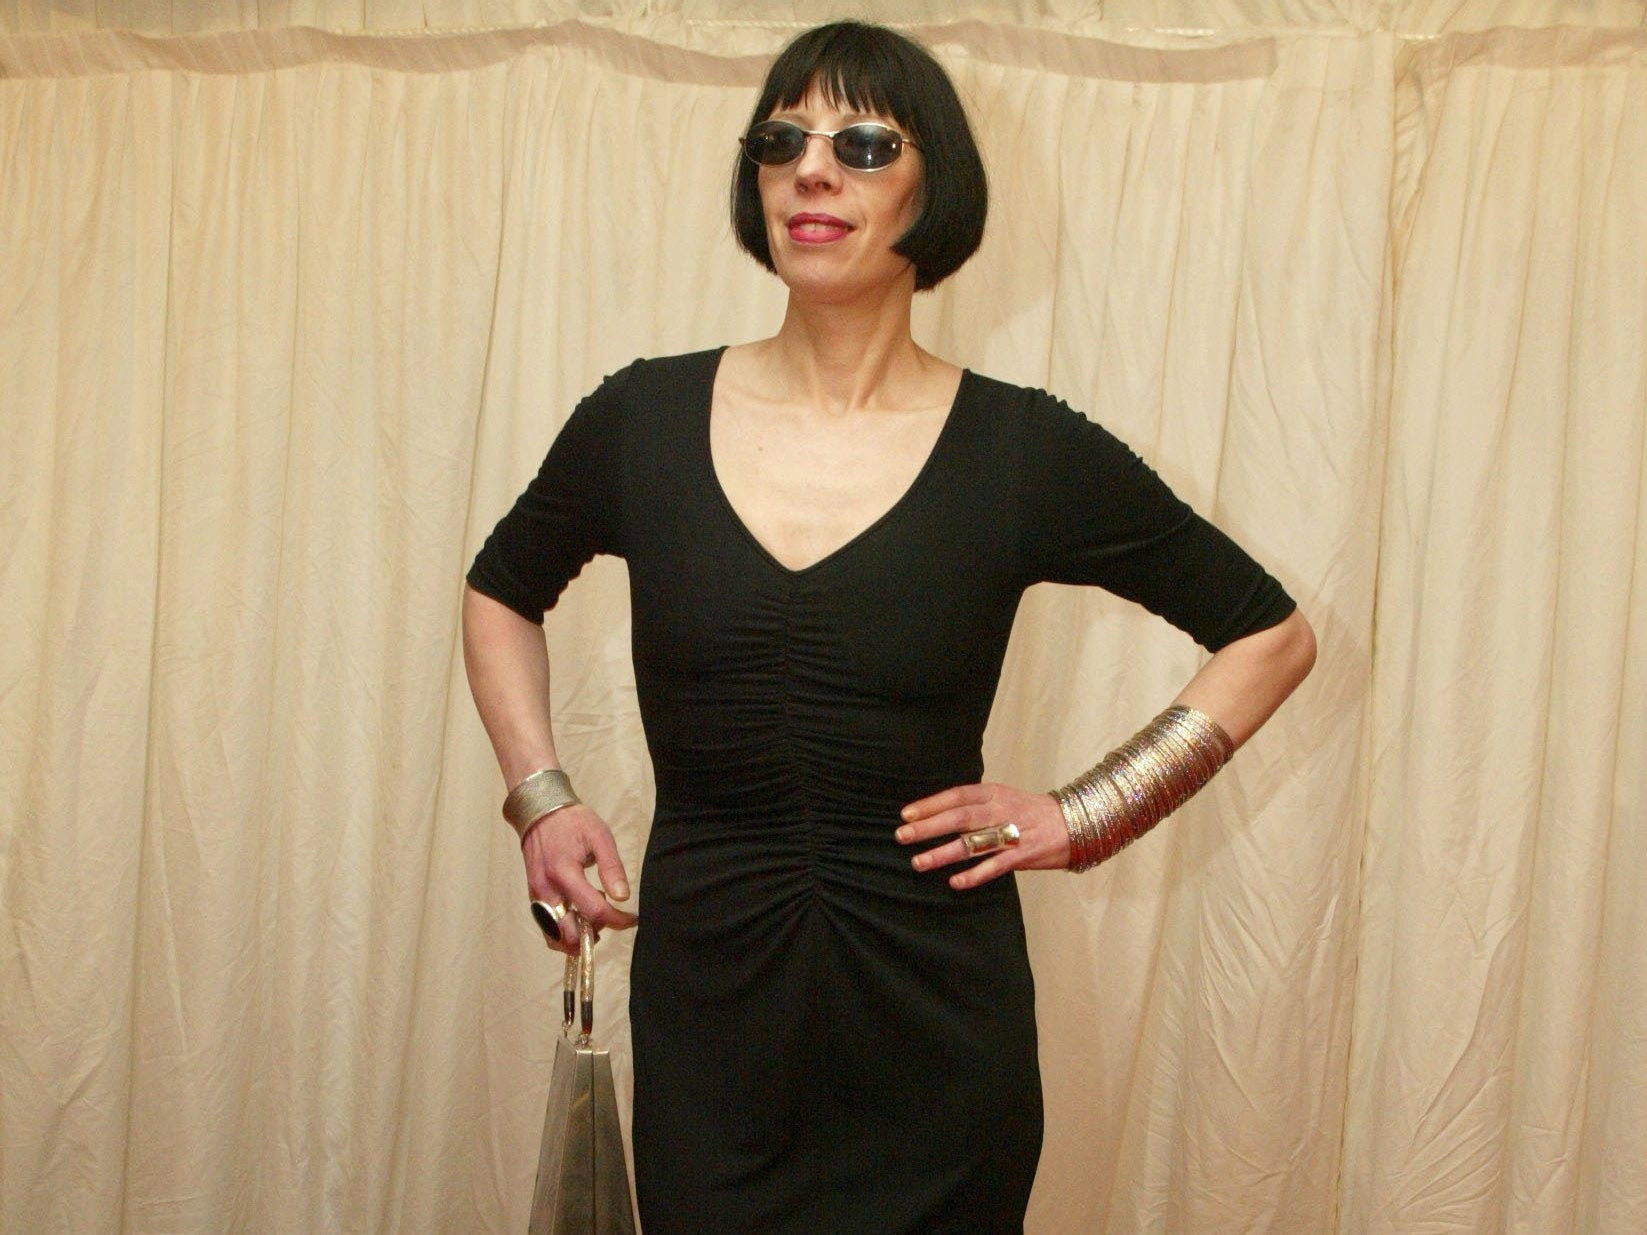 This bland world of safe spaces needs more glorious risk-takers like Magenta Devine